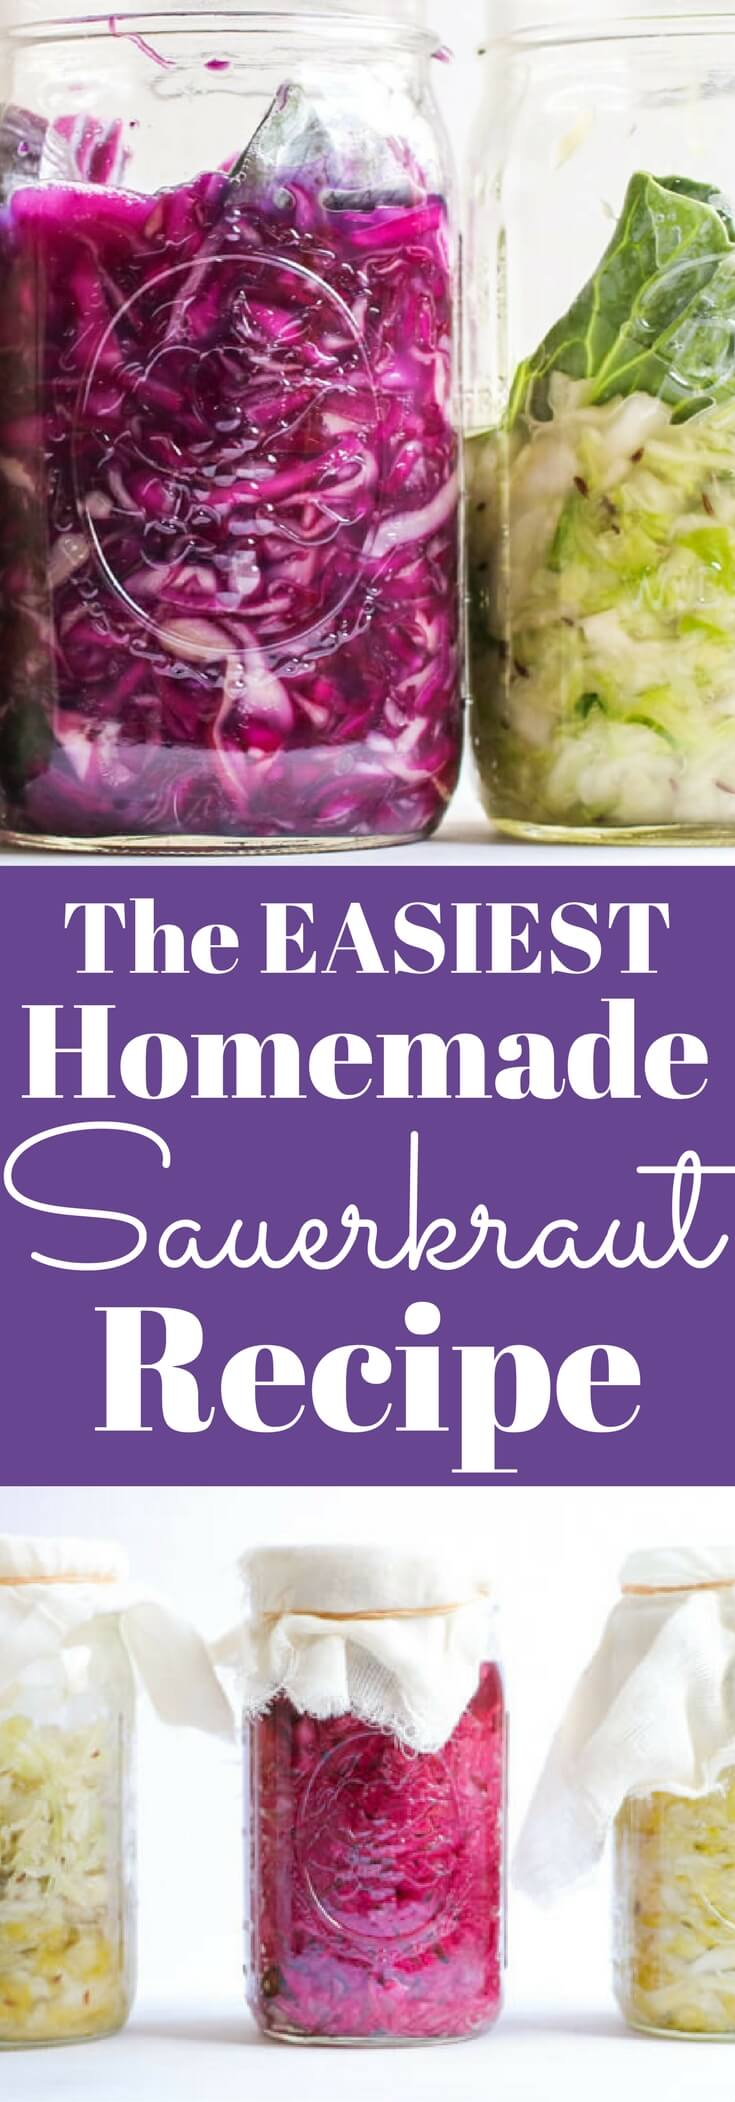 The easiest homemade sauerkraut recipe in a mason jar. No special equipment needed. #Fermentation #Guthealth |abraskitchen.com